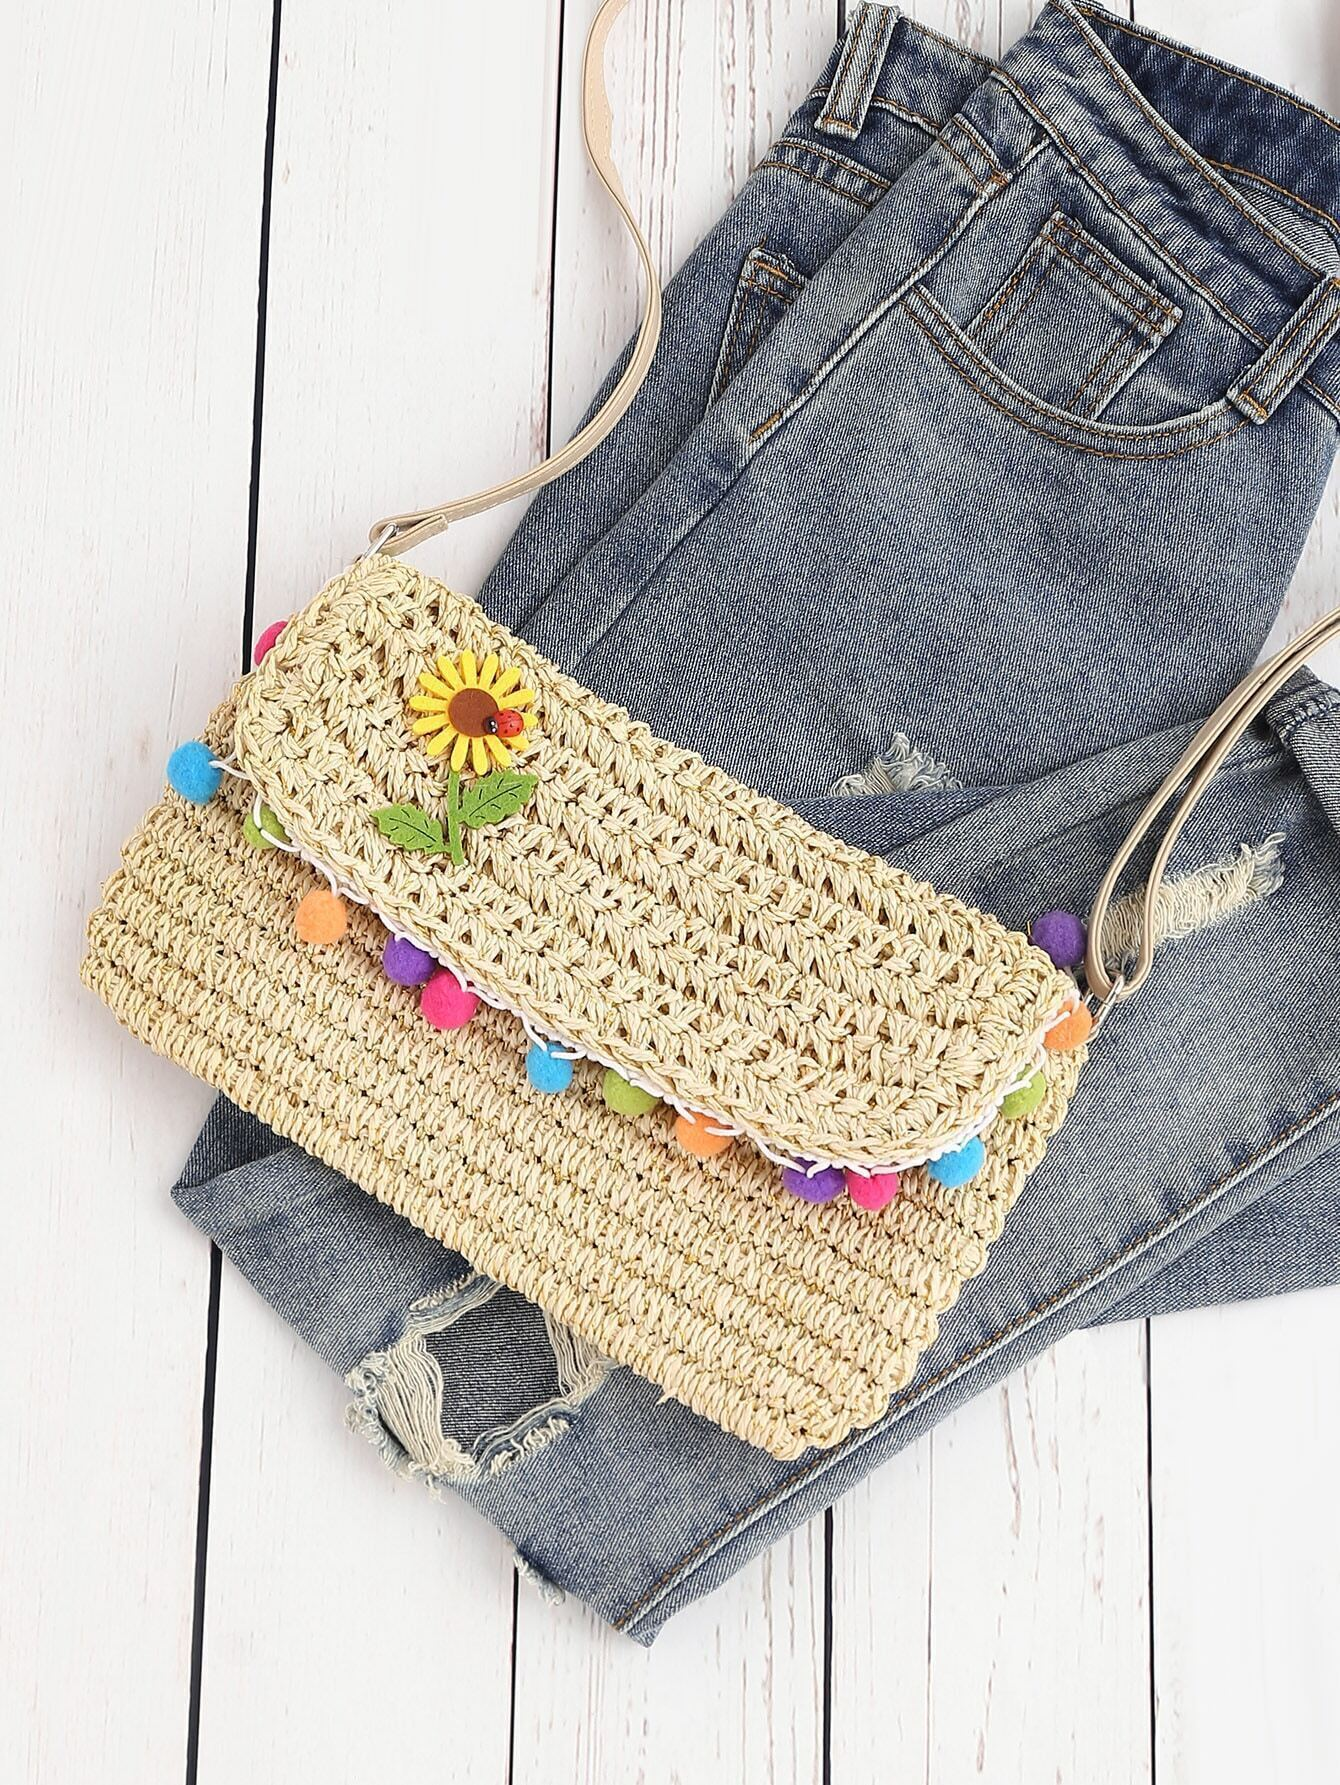 Buy Flower Detail Straw Crossbody Bag Pompom At ROMWE - Chinese Goods Catalog - ChinaPrices.net